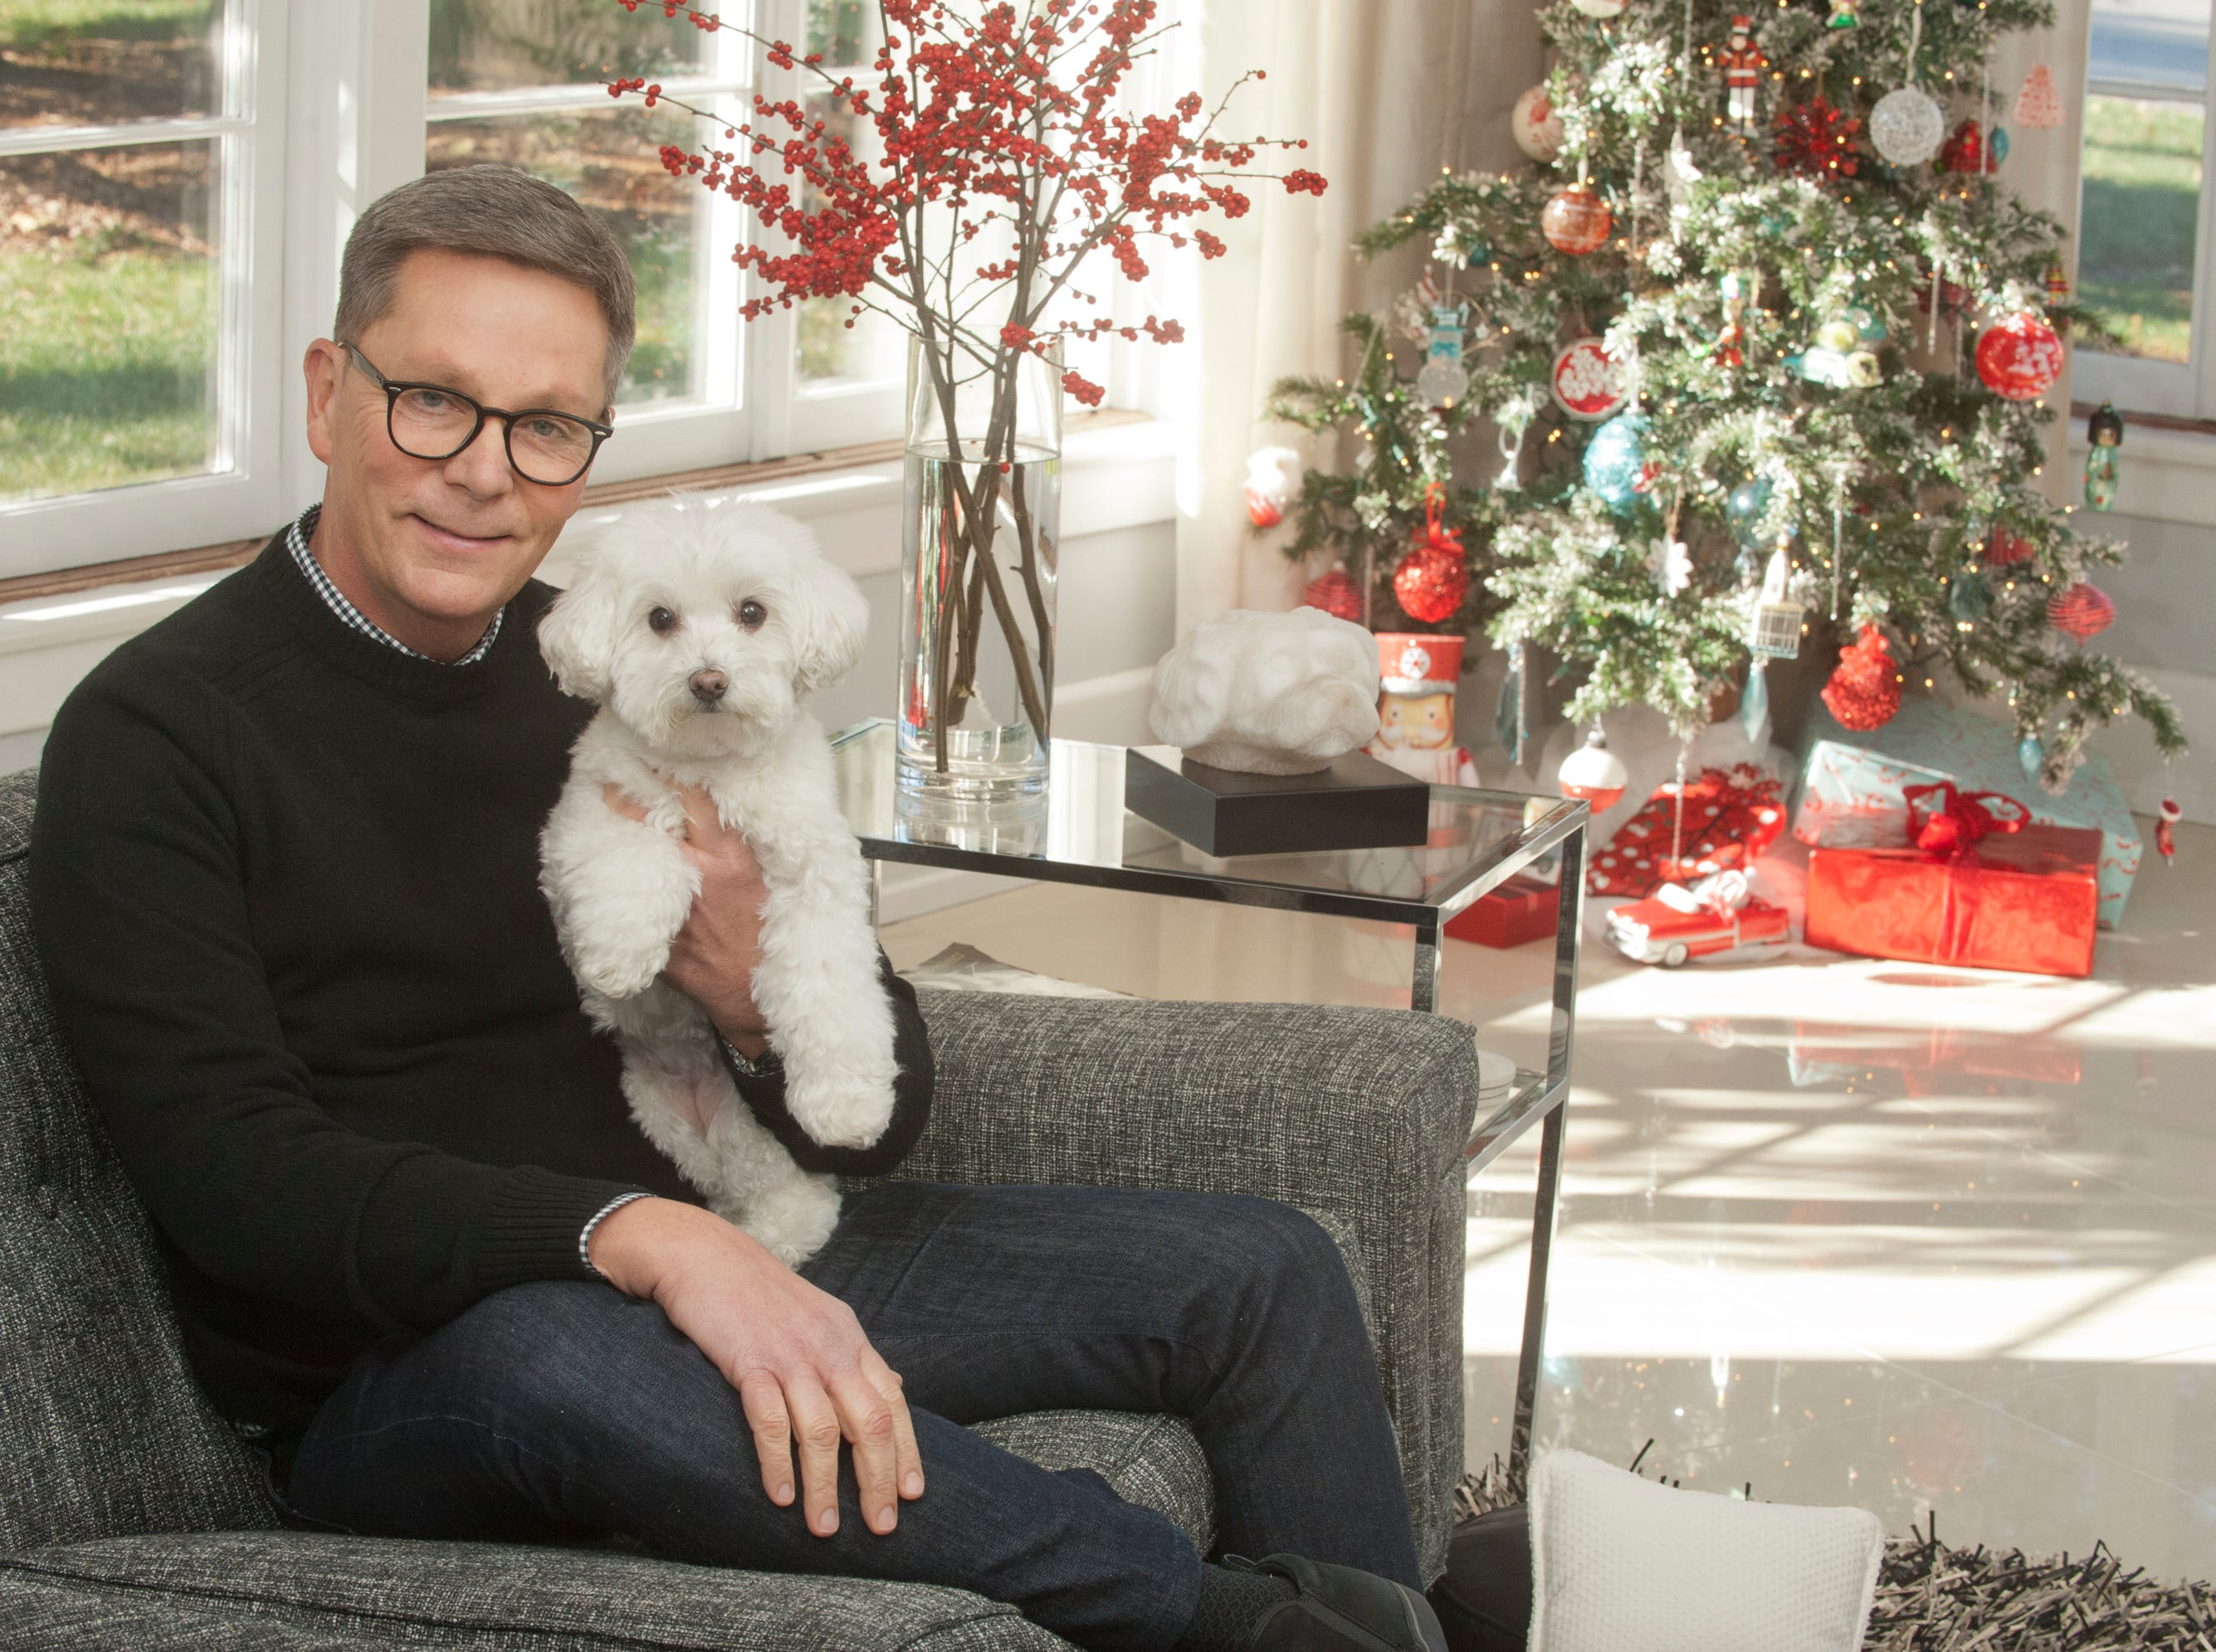 Lindy Casebier holds his dog, Mamie relax in the family living room.10 December 2018